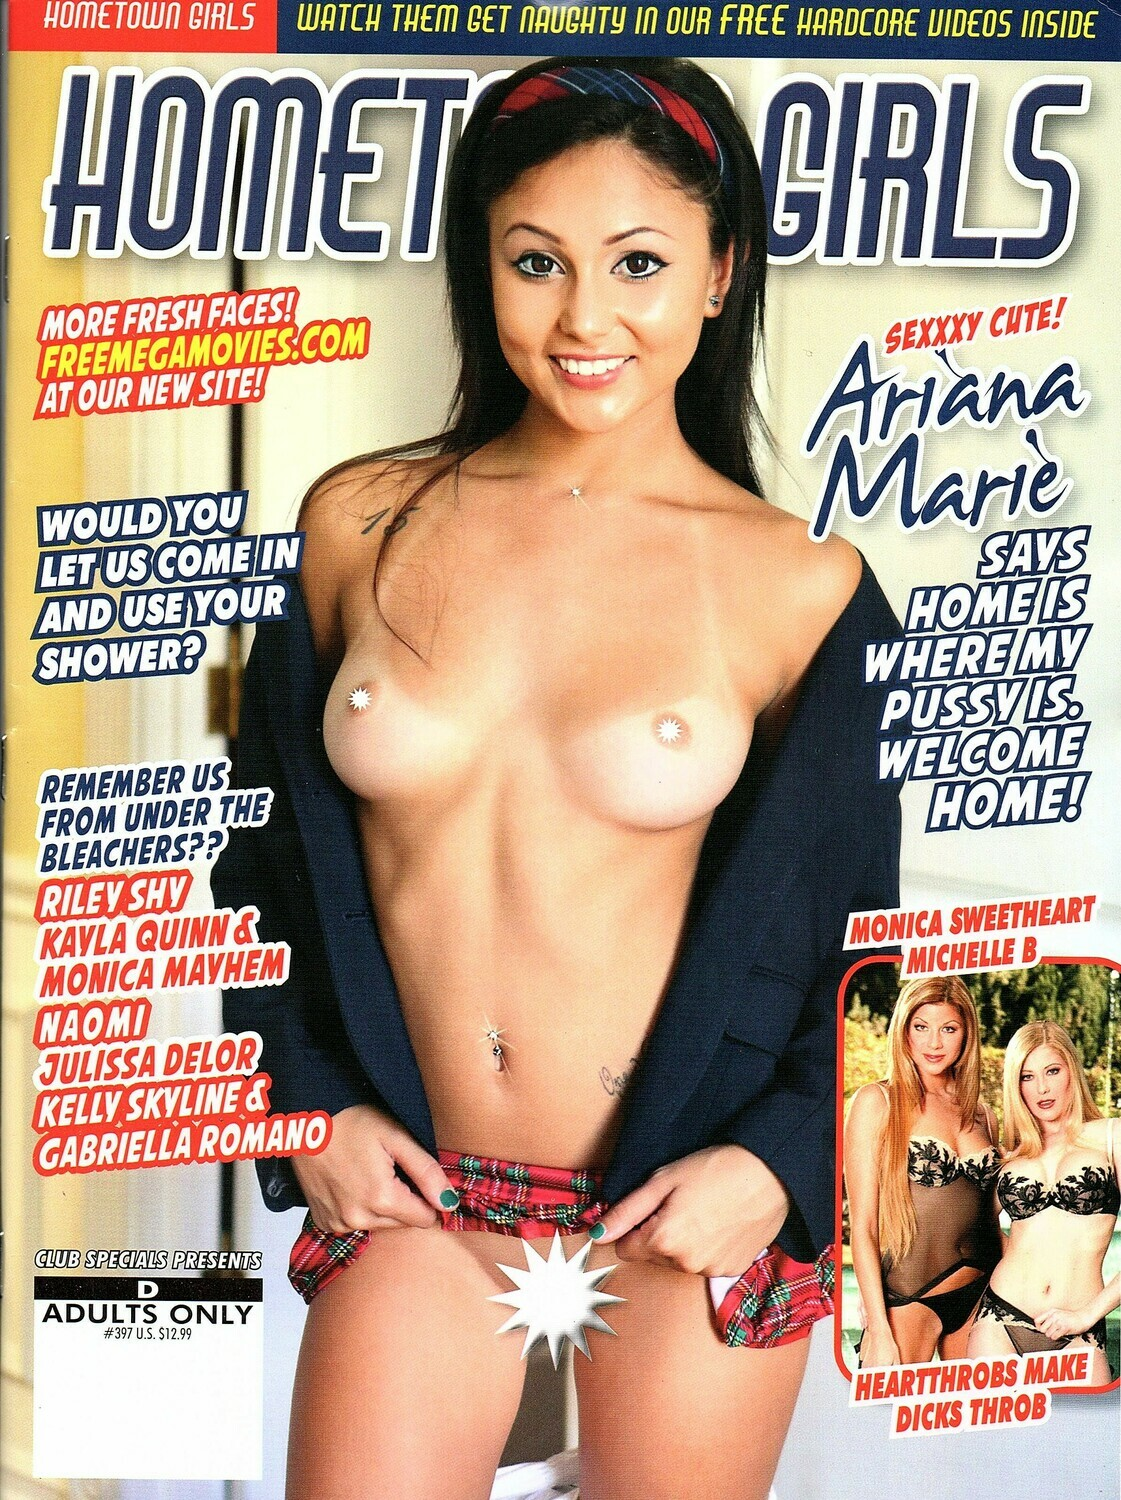 Hometown Girls Magazine Jan/Feb 2021 Ariana Marie